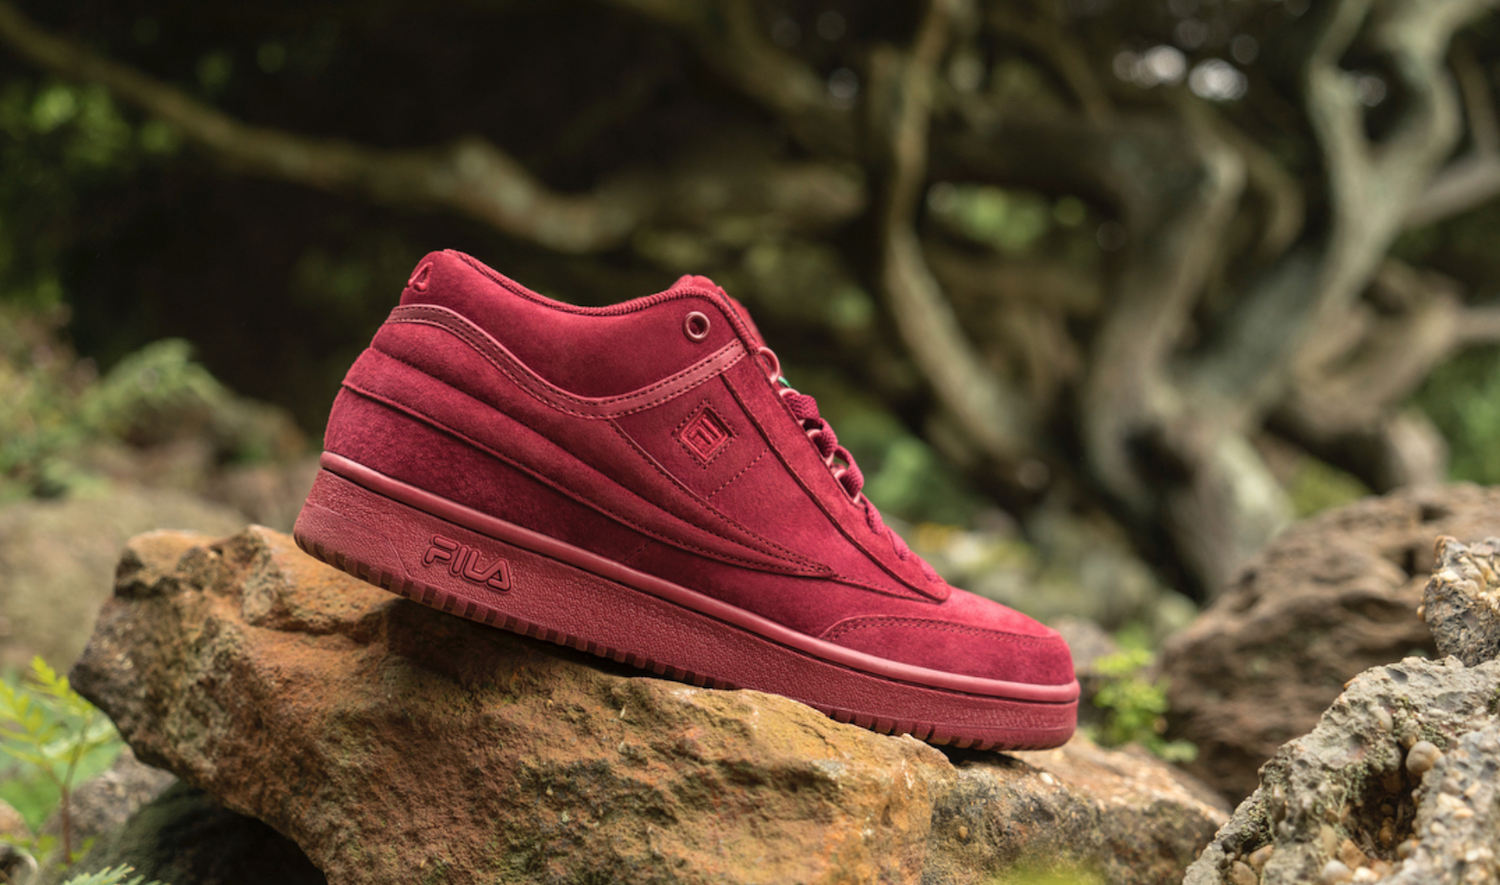 FILA T-1 Mid Premium holiday pack 3